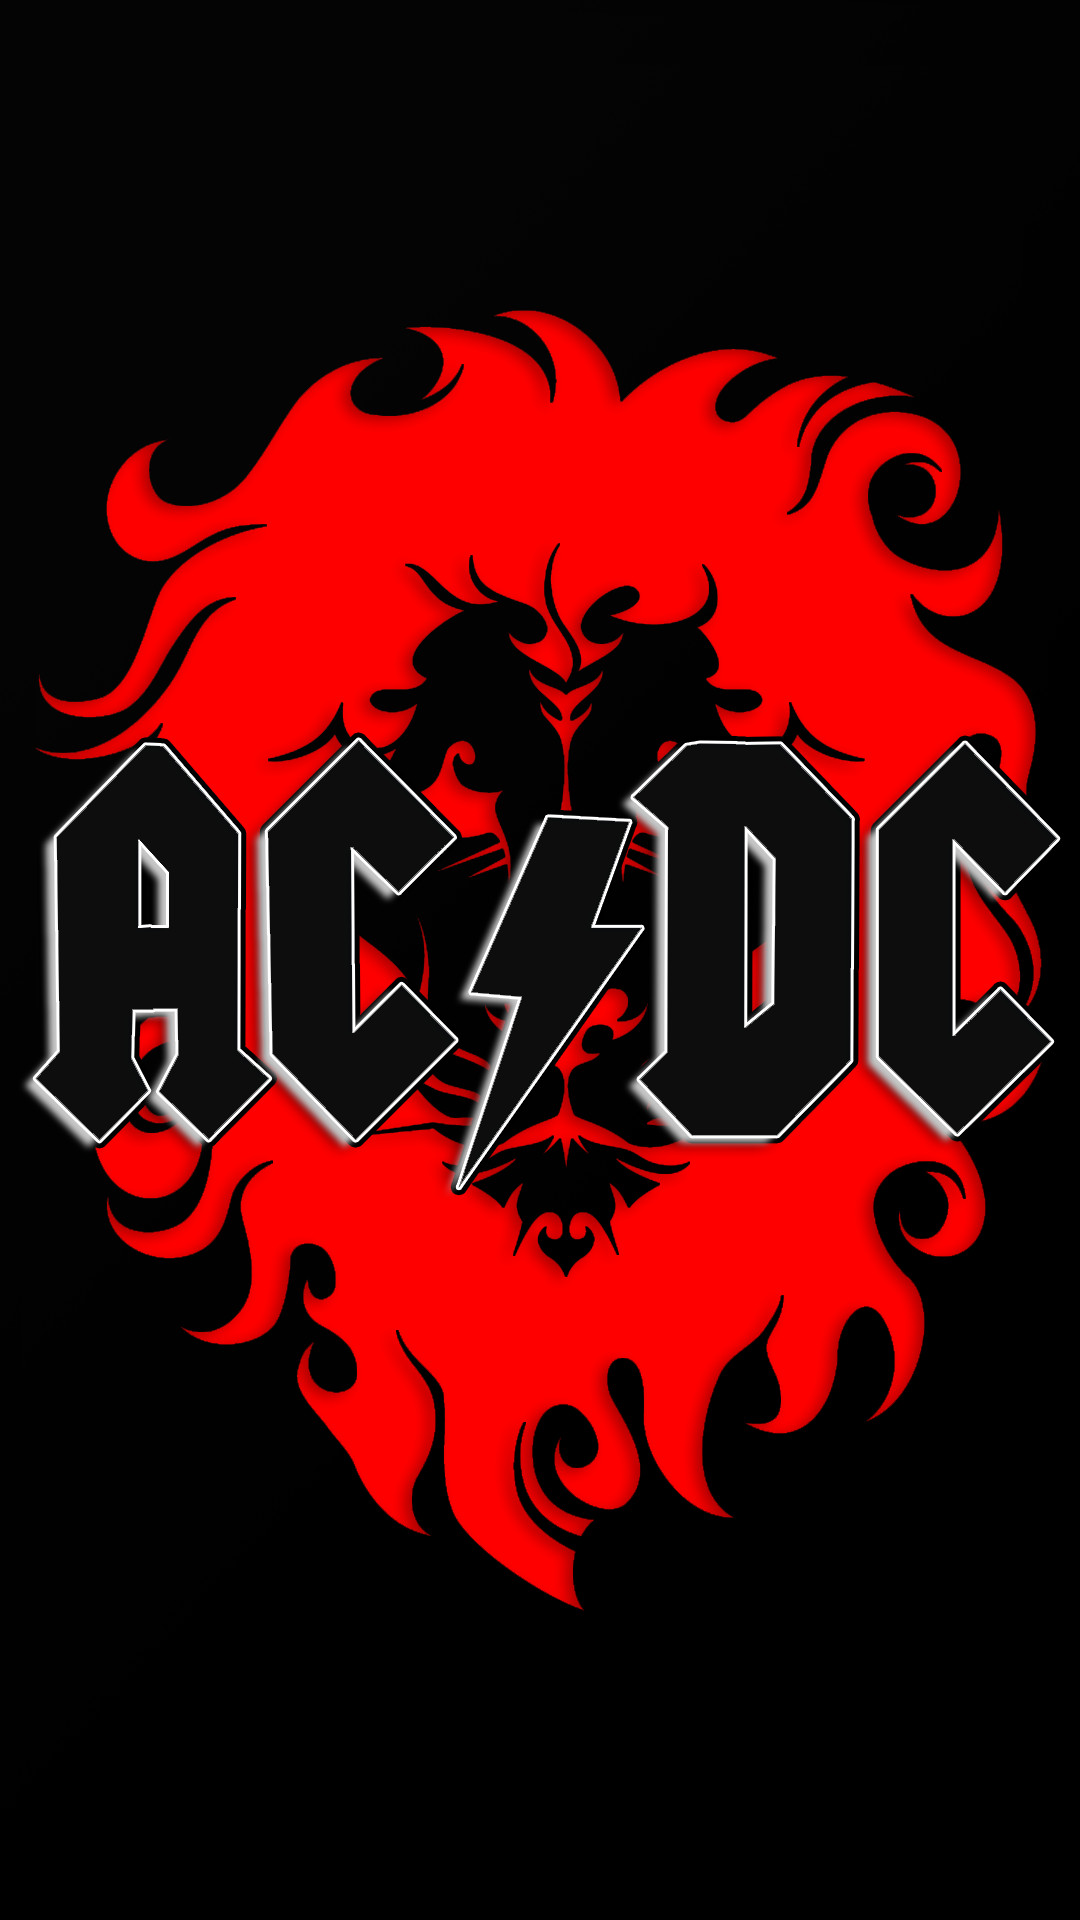 Res: 1080x1920, Acdc Lion 1080 x 1920 FHD Wallpaper Acdc Lion 1080 x 1920 FHD Wallpaper